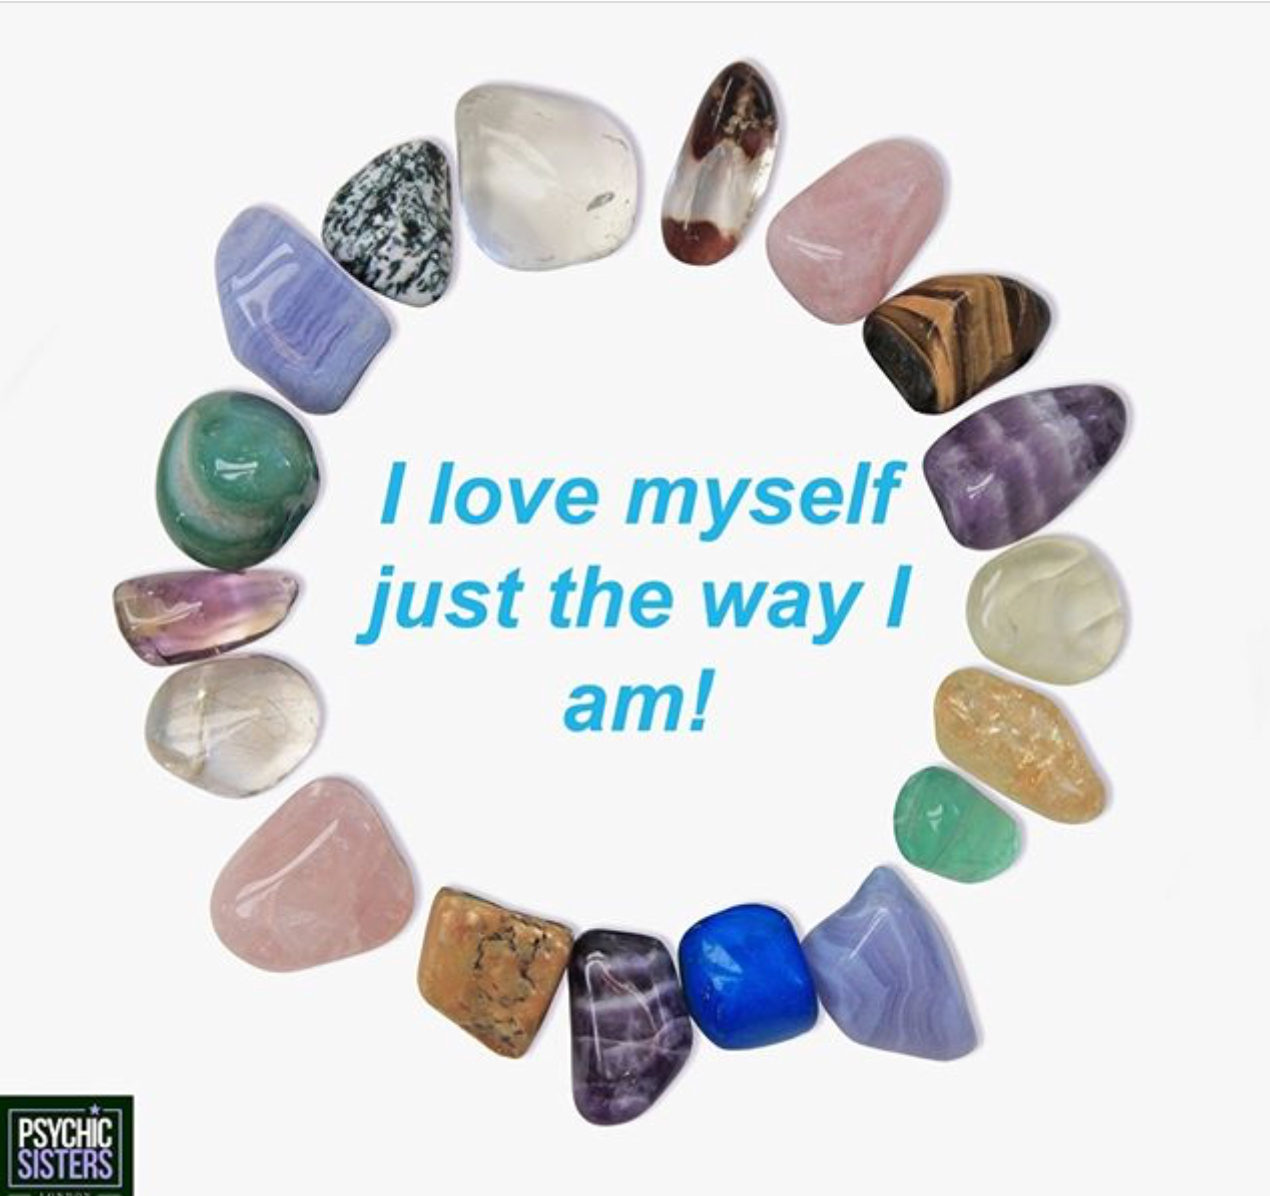 WEEKLY AFFIRMATION